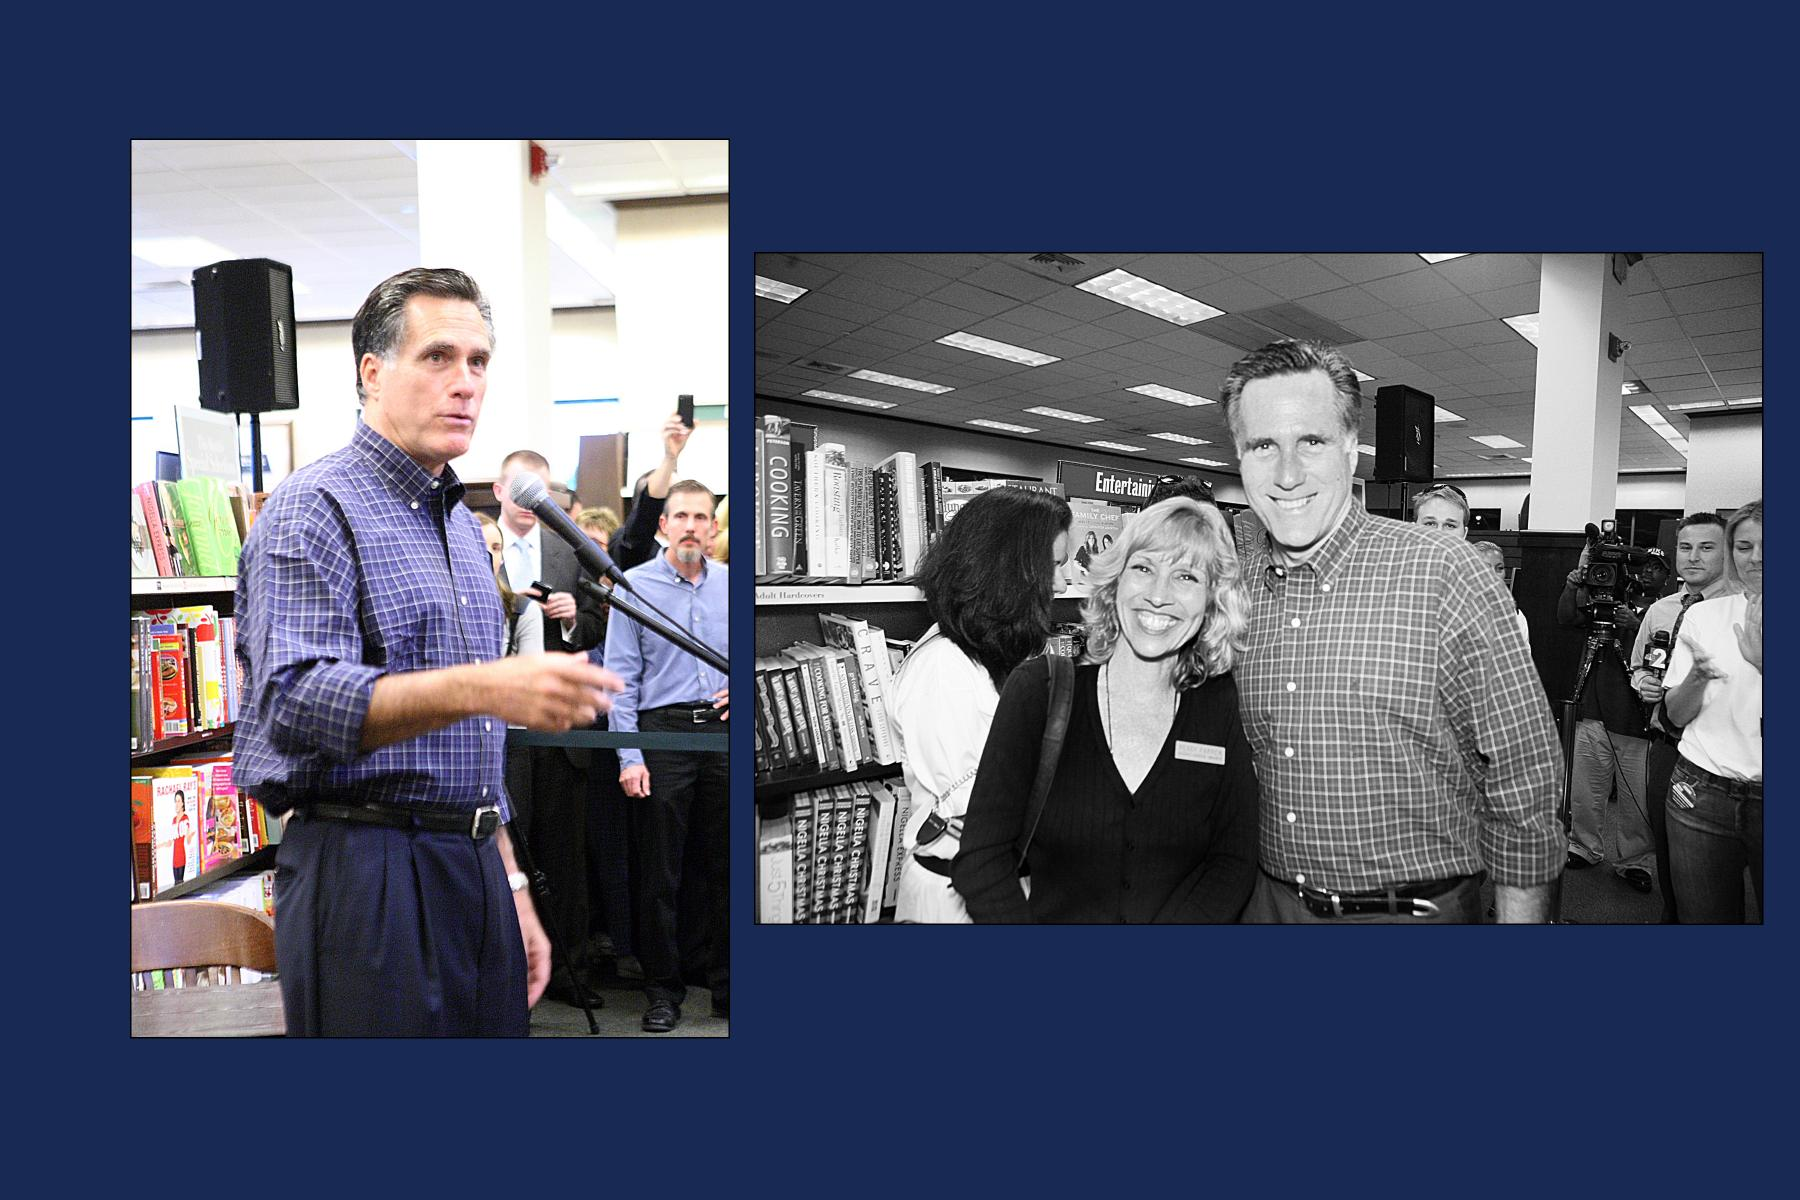 Peggy with Mitt Romney